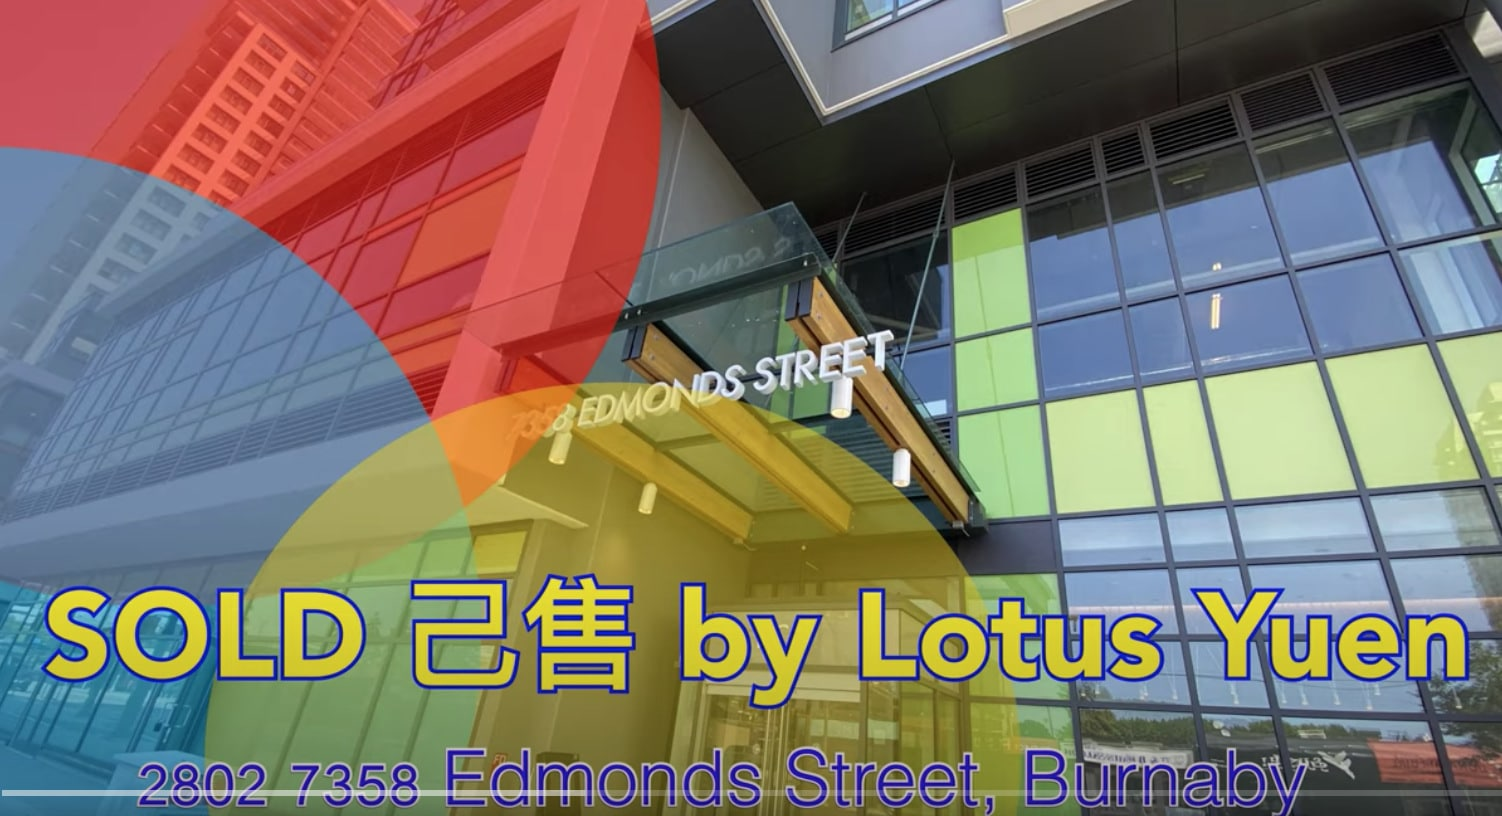 SOLD : Kings Crossing II sold by Lotus Yuen PREC